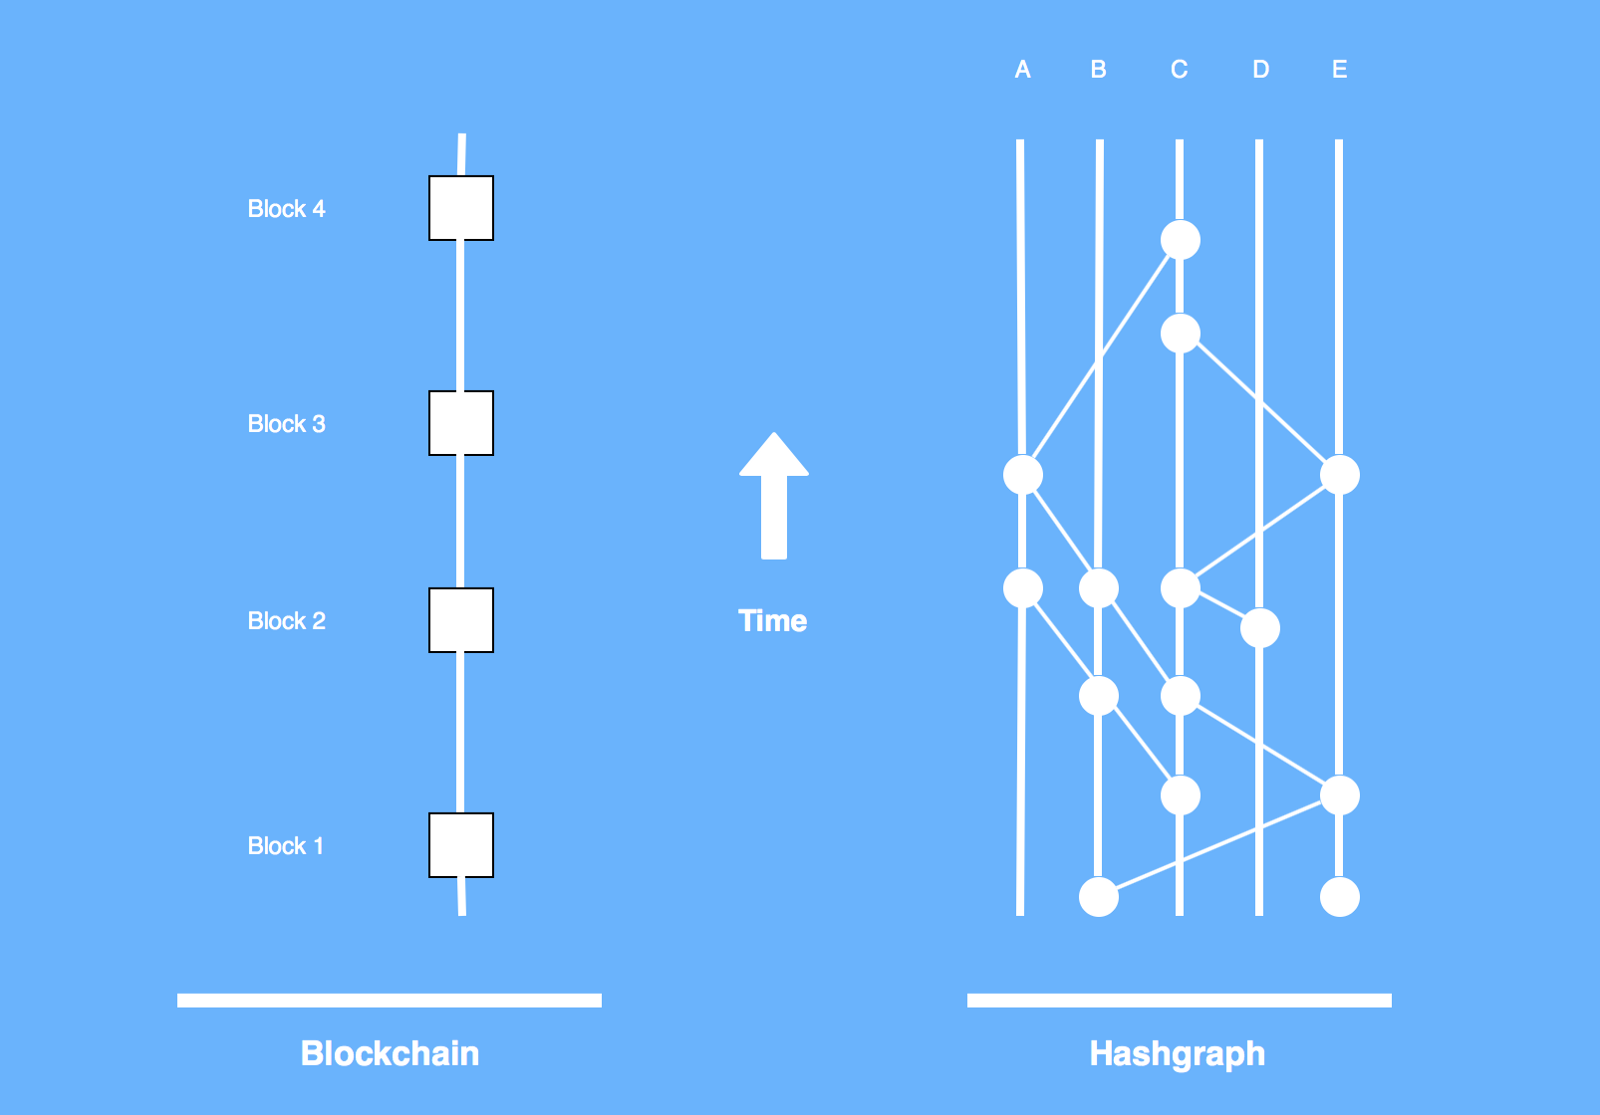 Blockchains vs. Hashgraphs